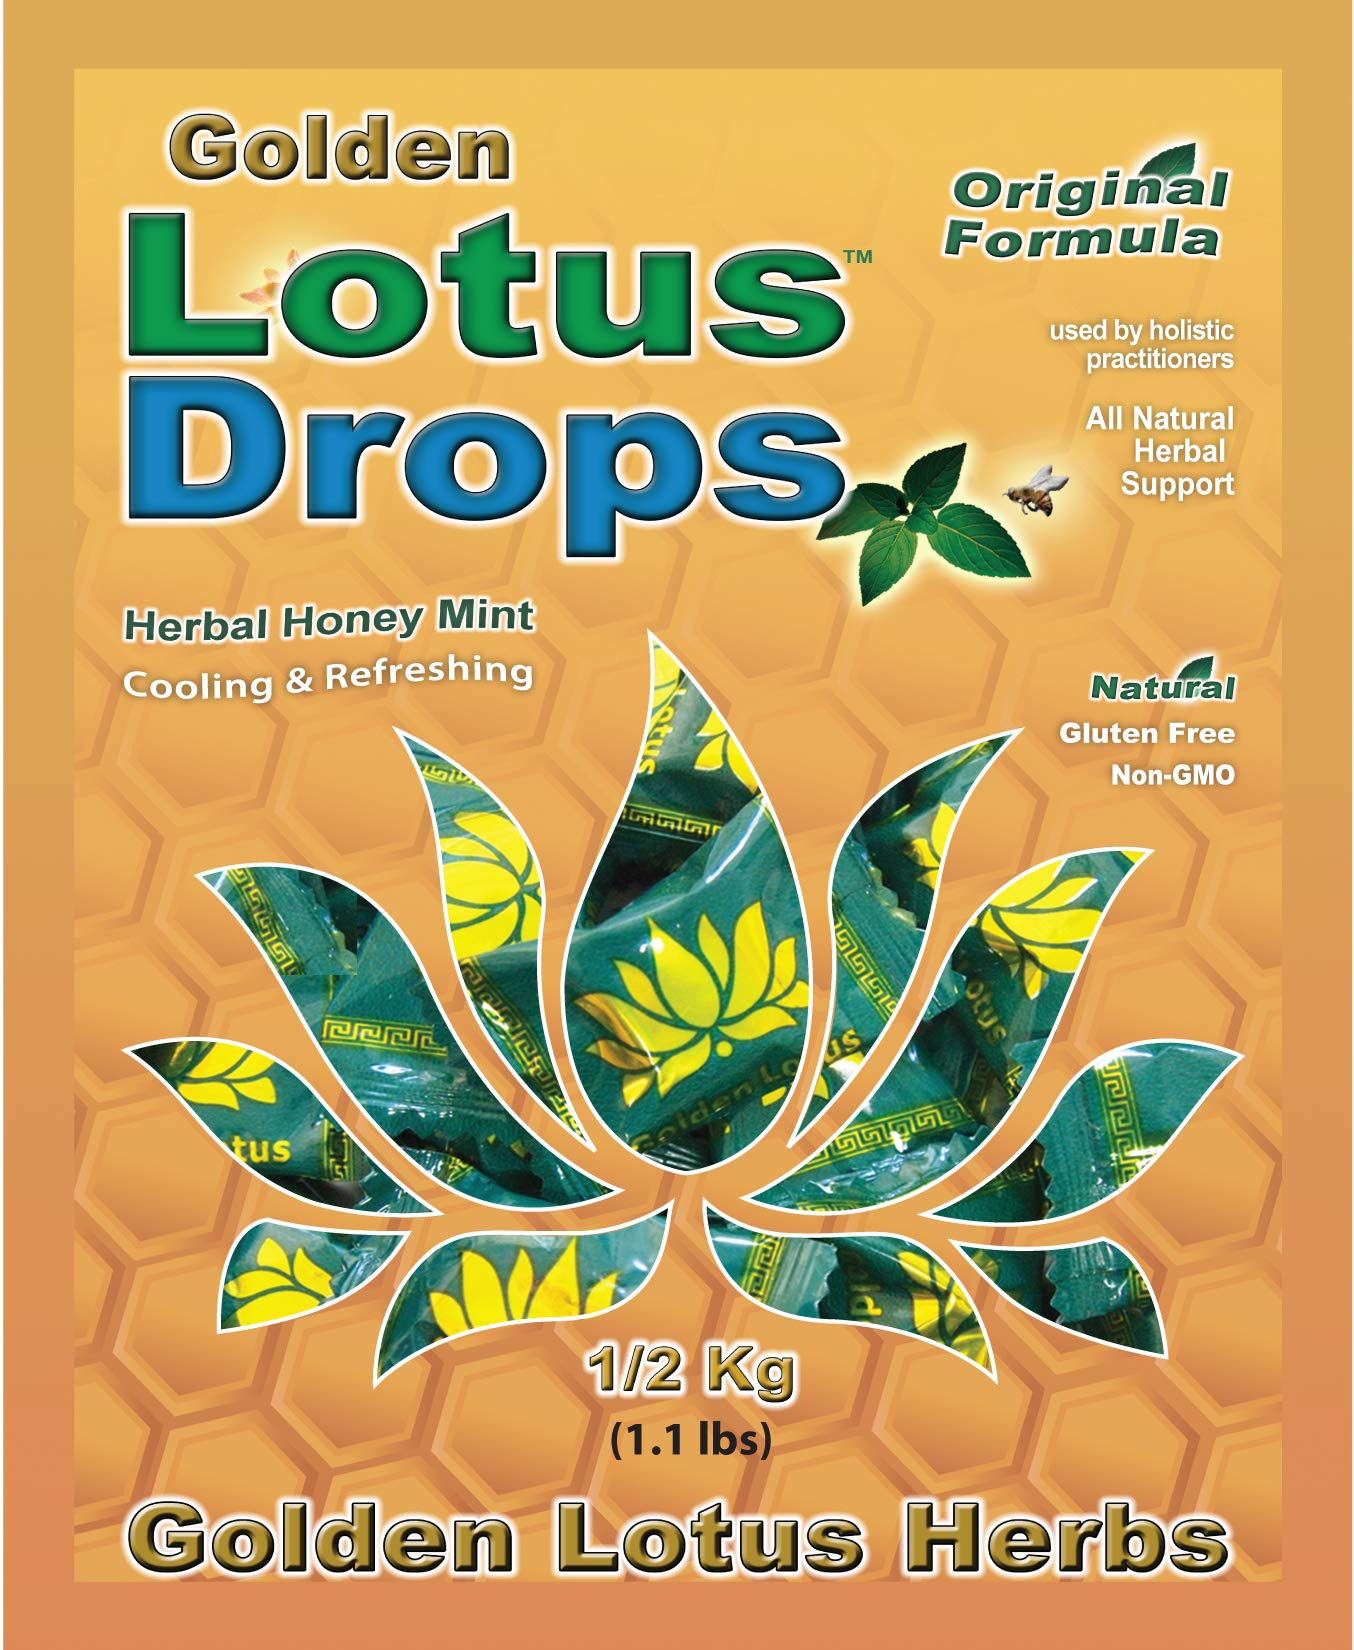 Golden Lotus Drops (Original Formula) - Non GMO (1/2 Kilo - 115 Cough Drops) by Golden Lotus Herbs